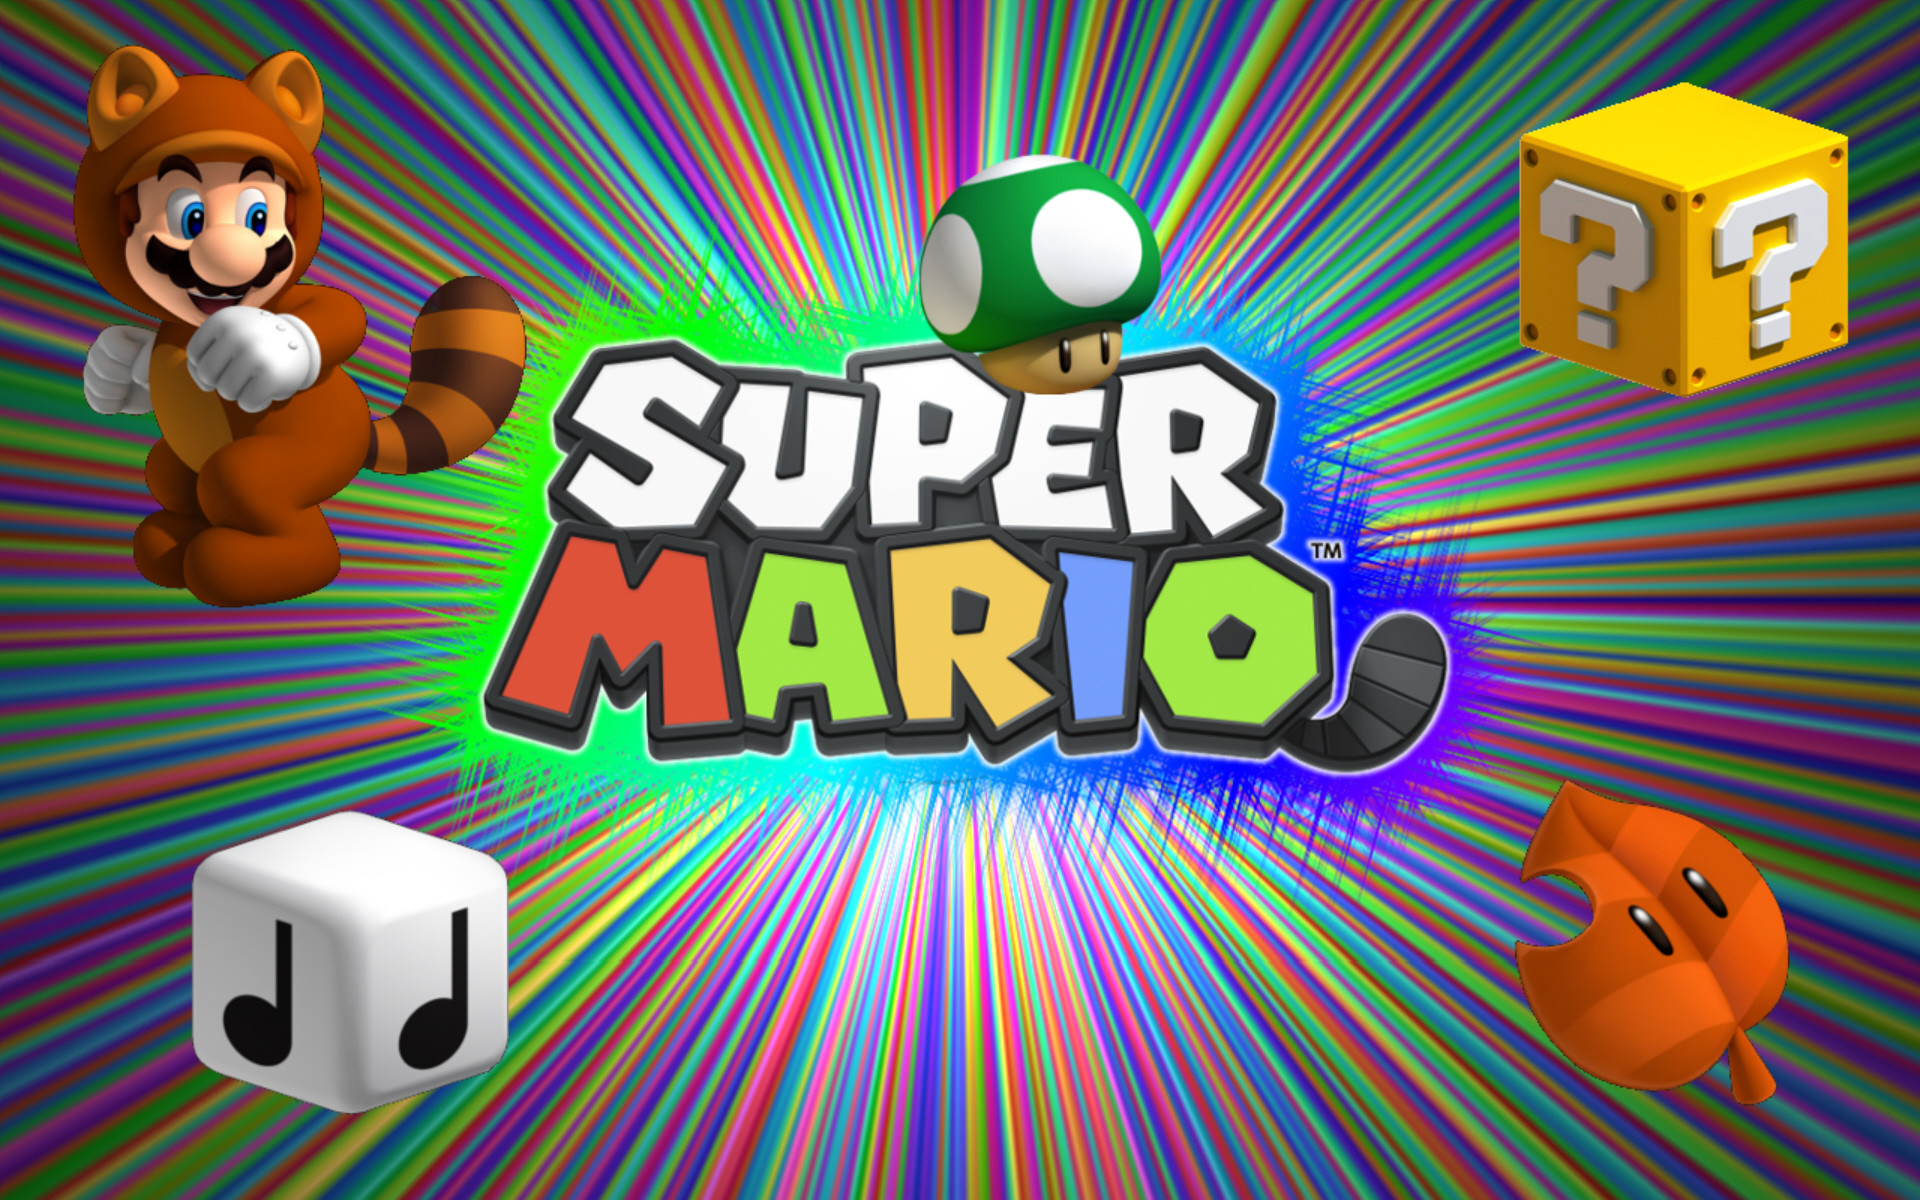 Super Mario 64 Wallpaper (76+ images)